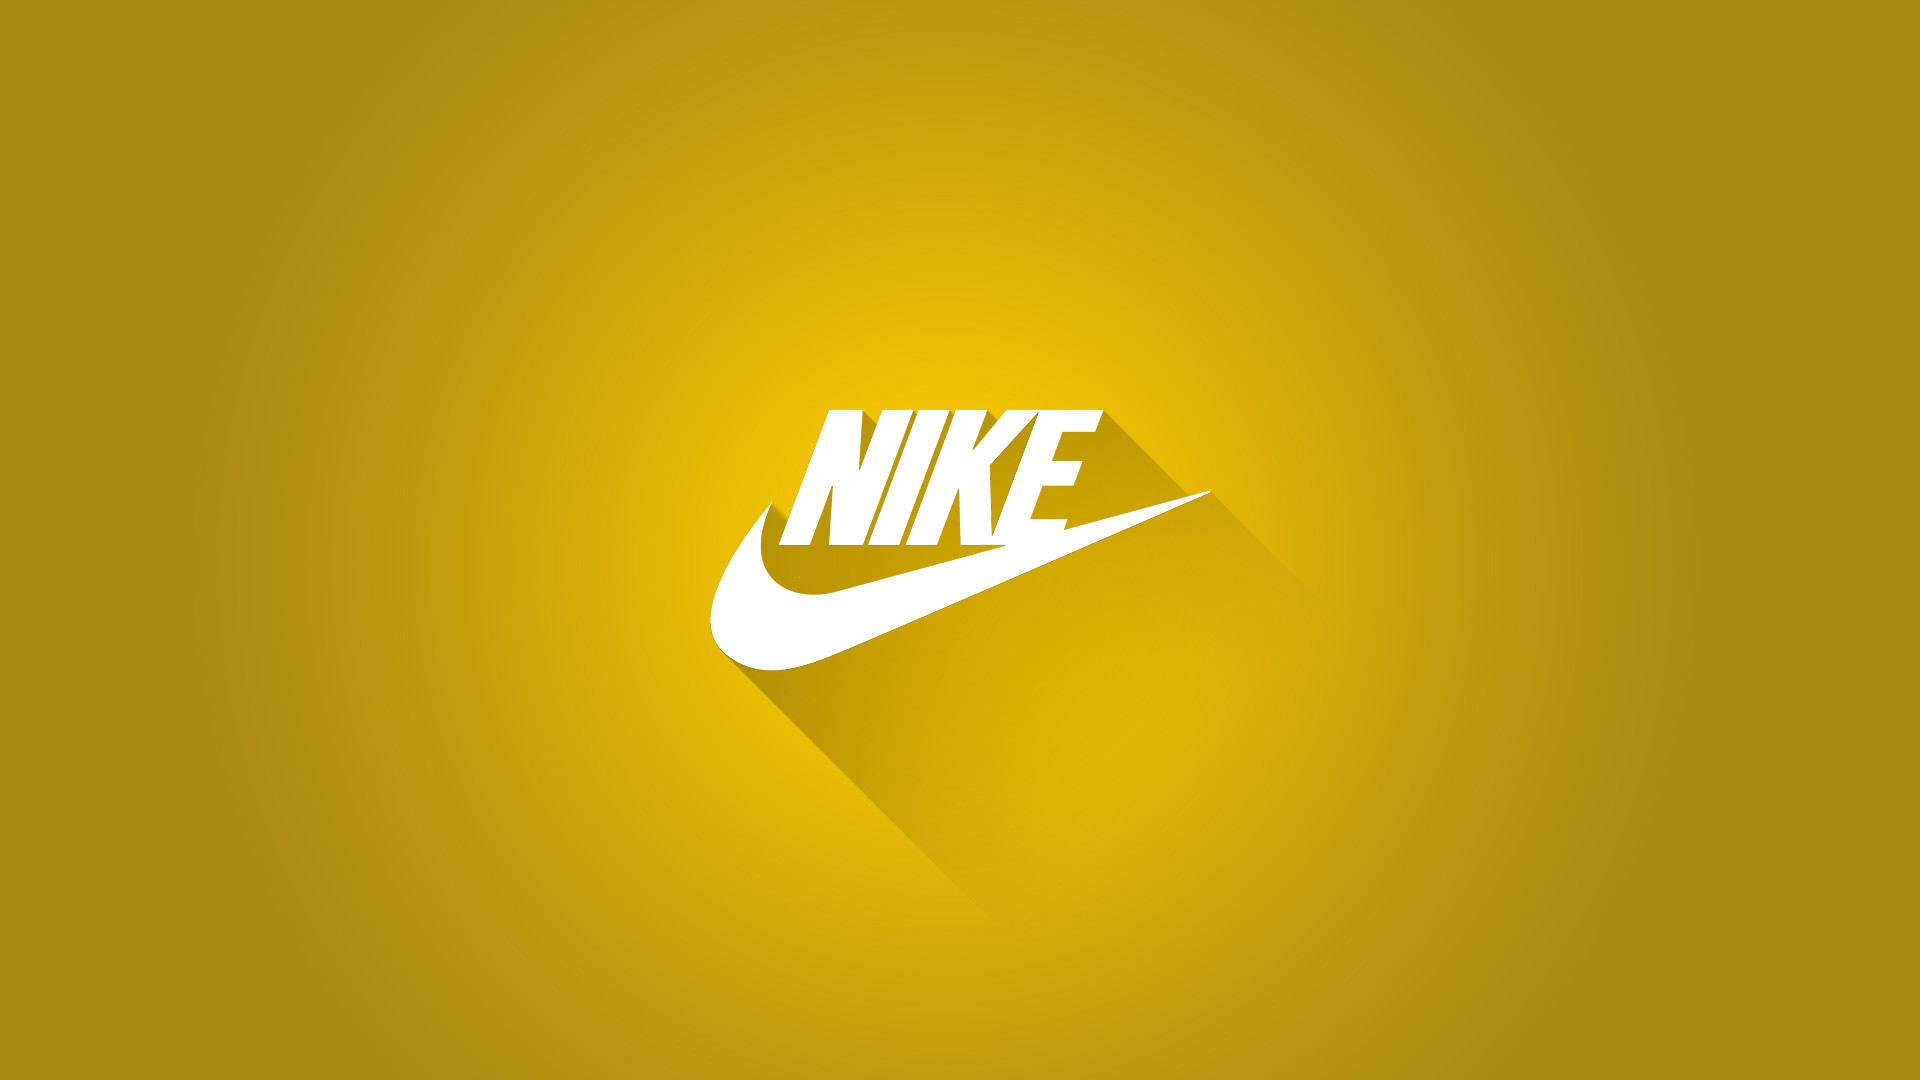 Res: 1920x1080, Products - Nike Wallpaper